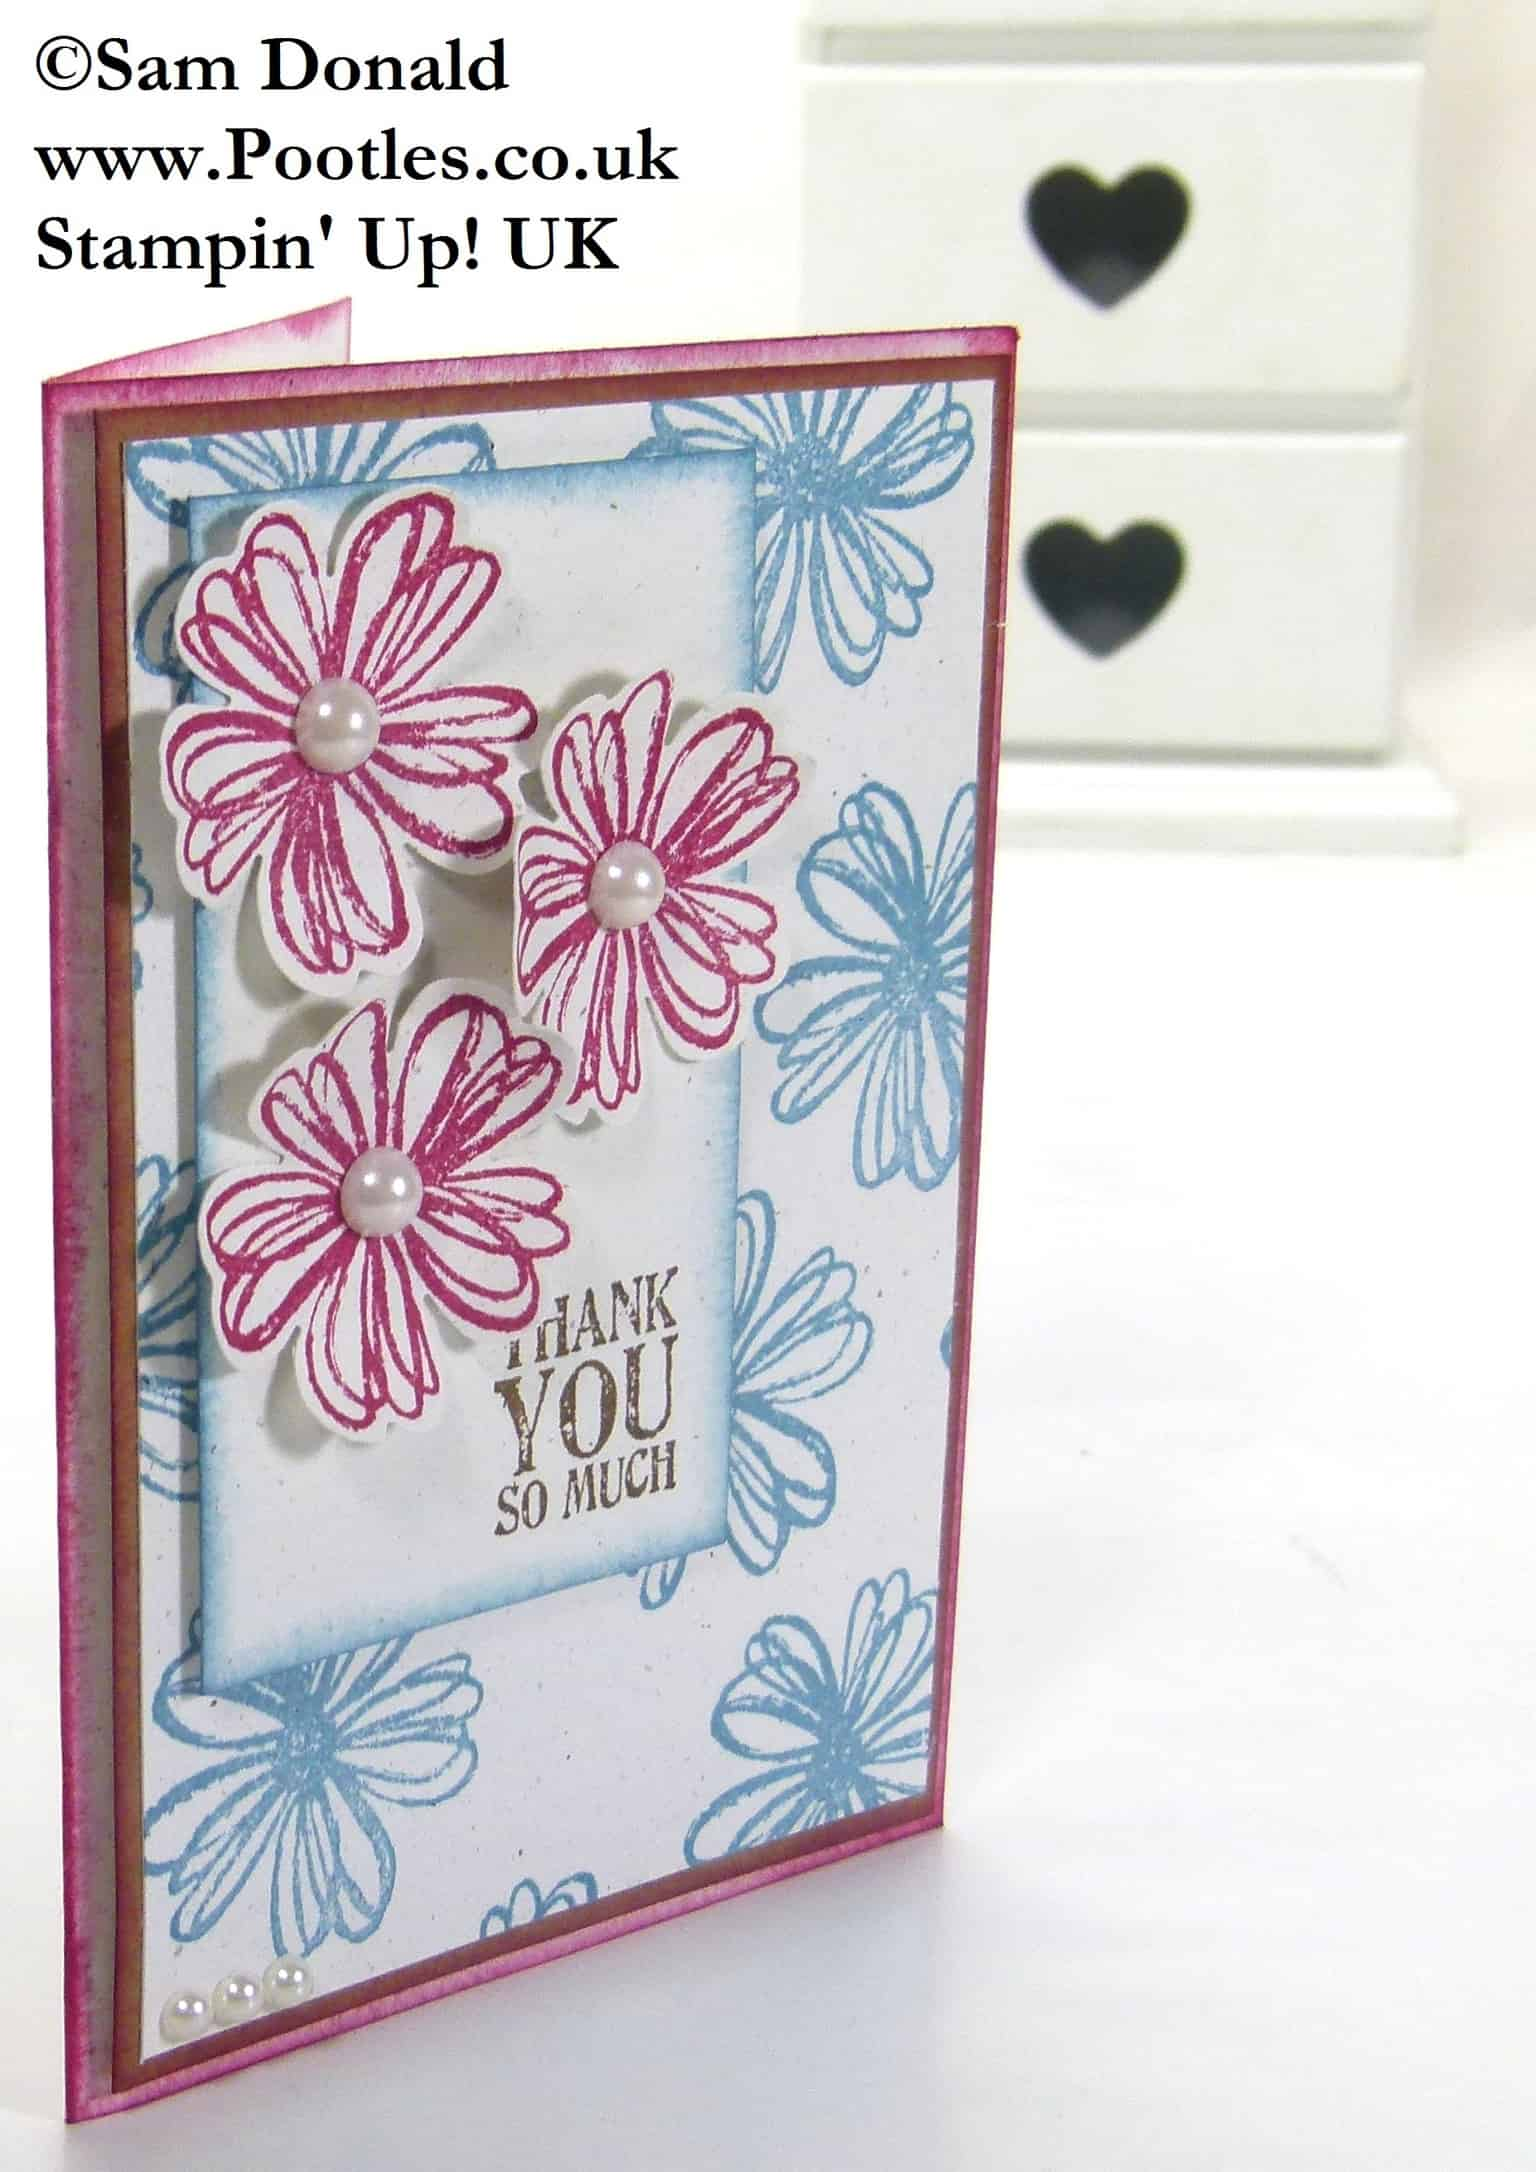 Pootles Stampin Up UK Flower Shop Showcase 2